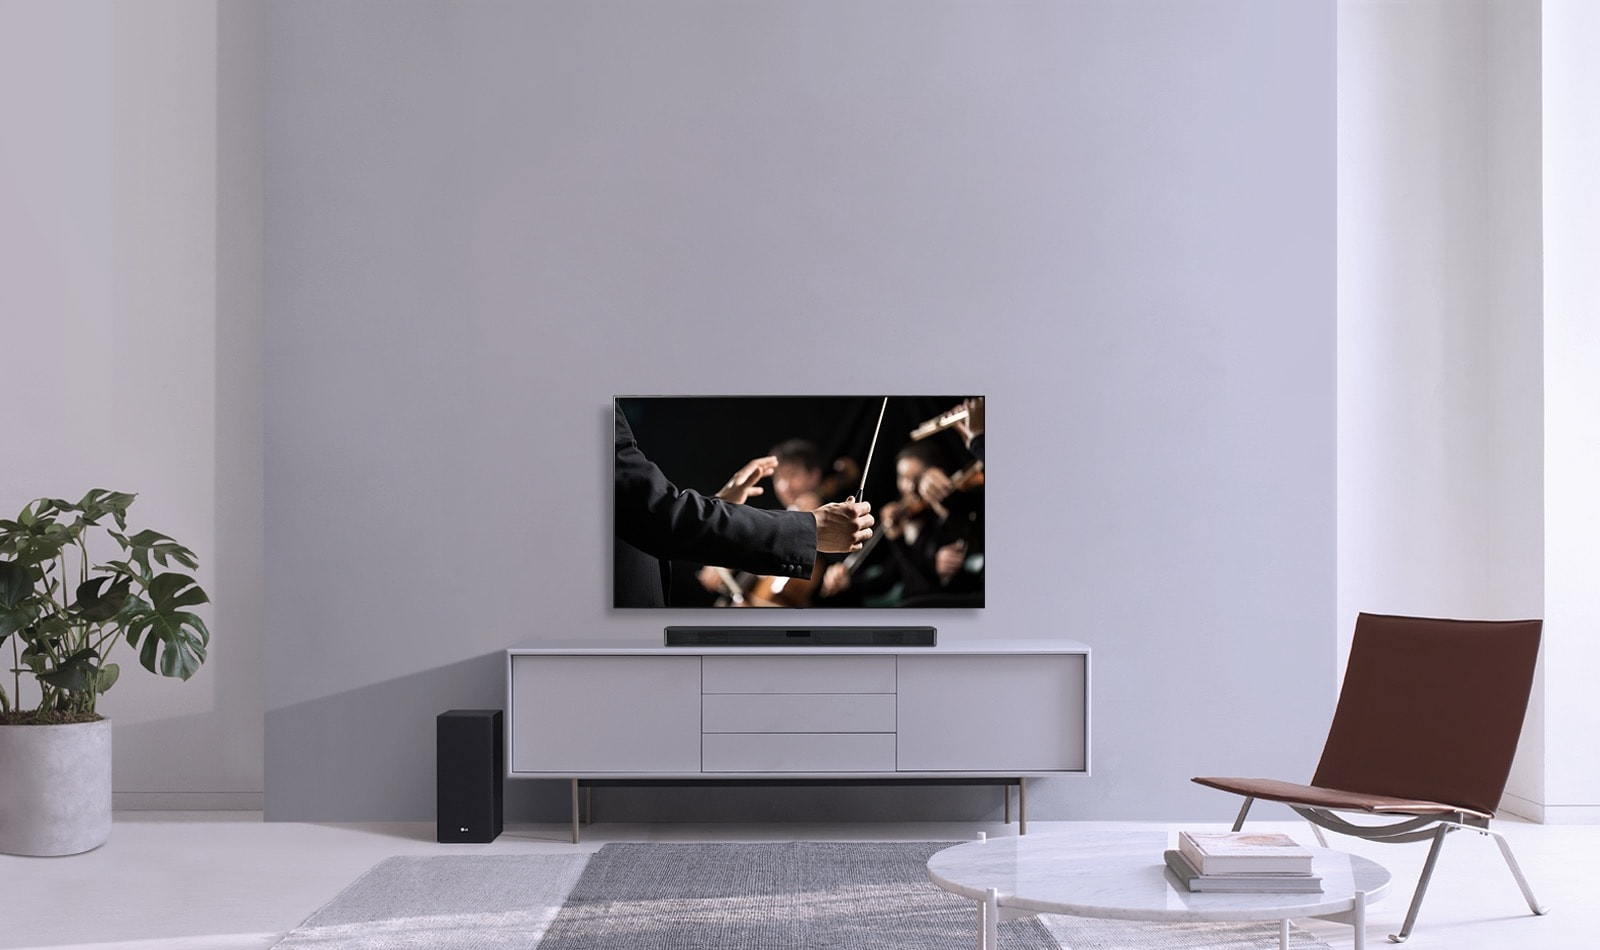 CAV-SoundBar-SL5Y-06-TV-Sound-Sync-Desktop